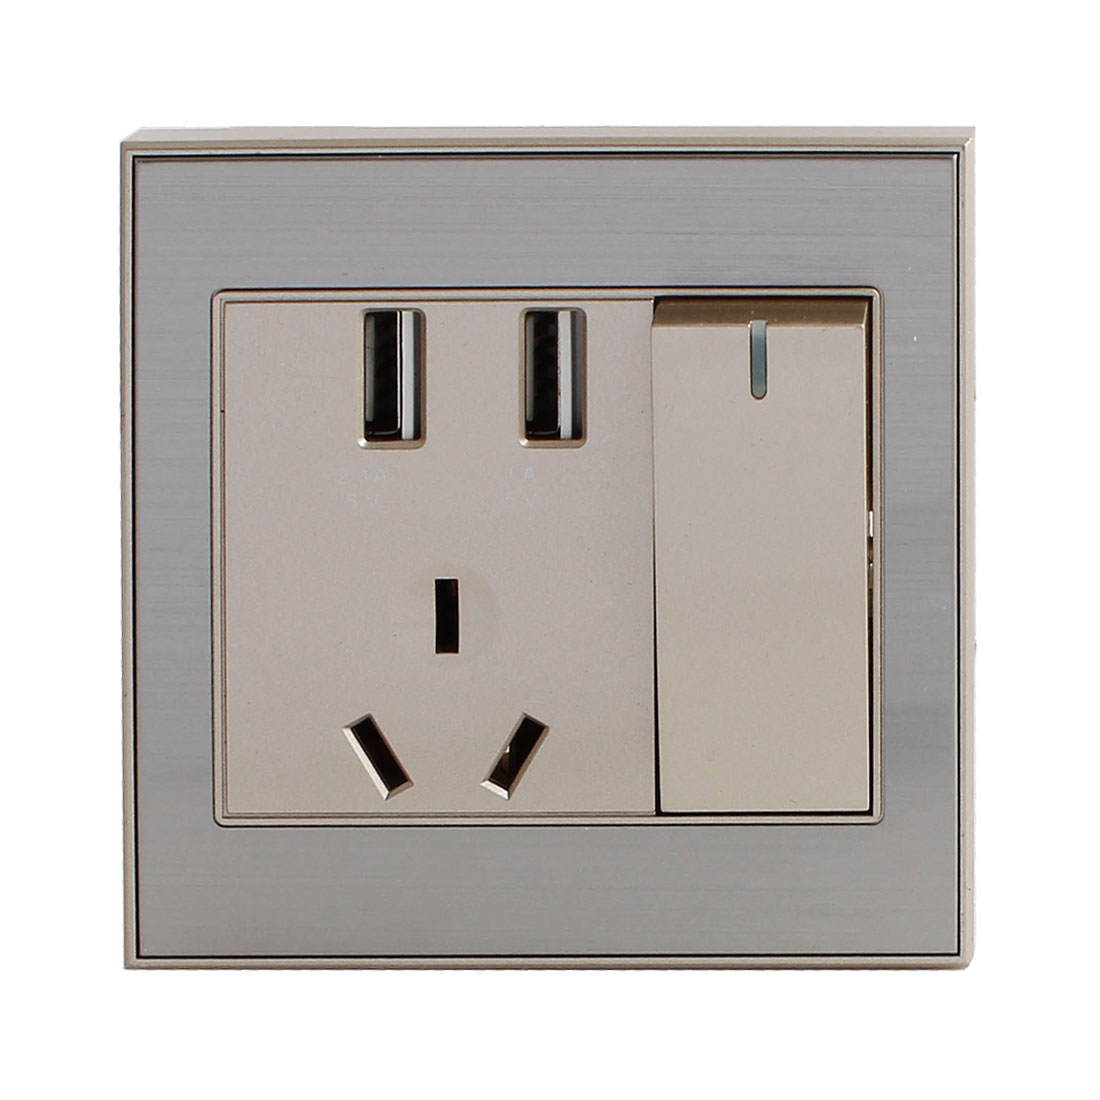 250V AU Outlet 2 USB Ports Outlet Power Wall Switch Socket Plate Panel Champagne Gold